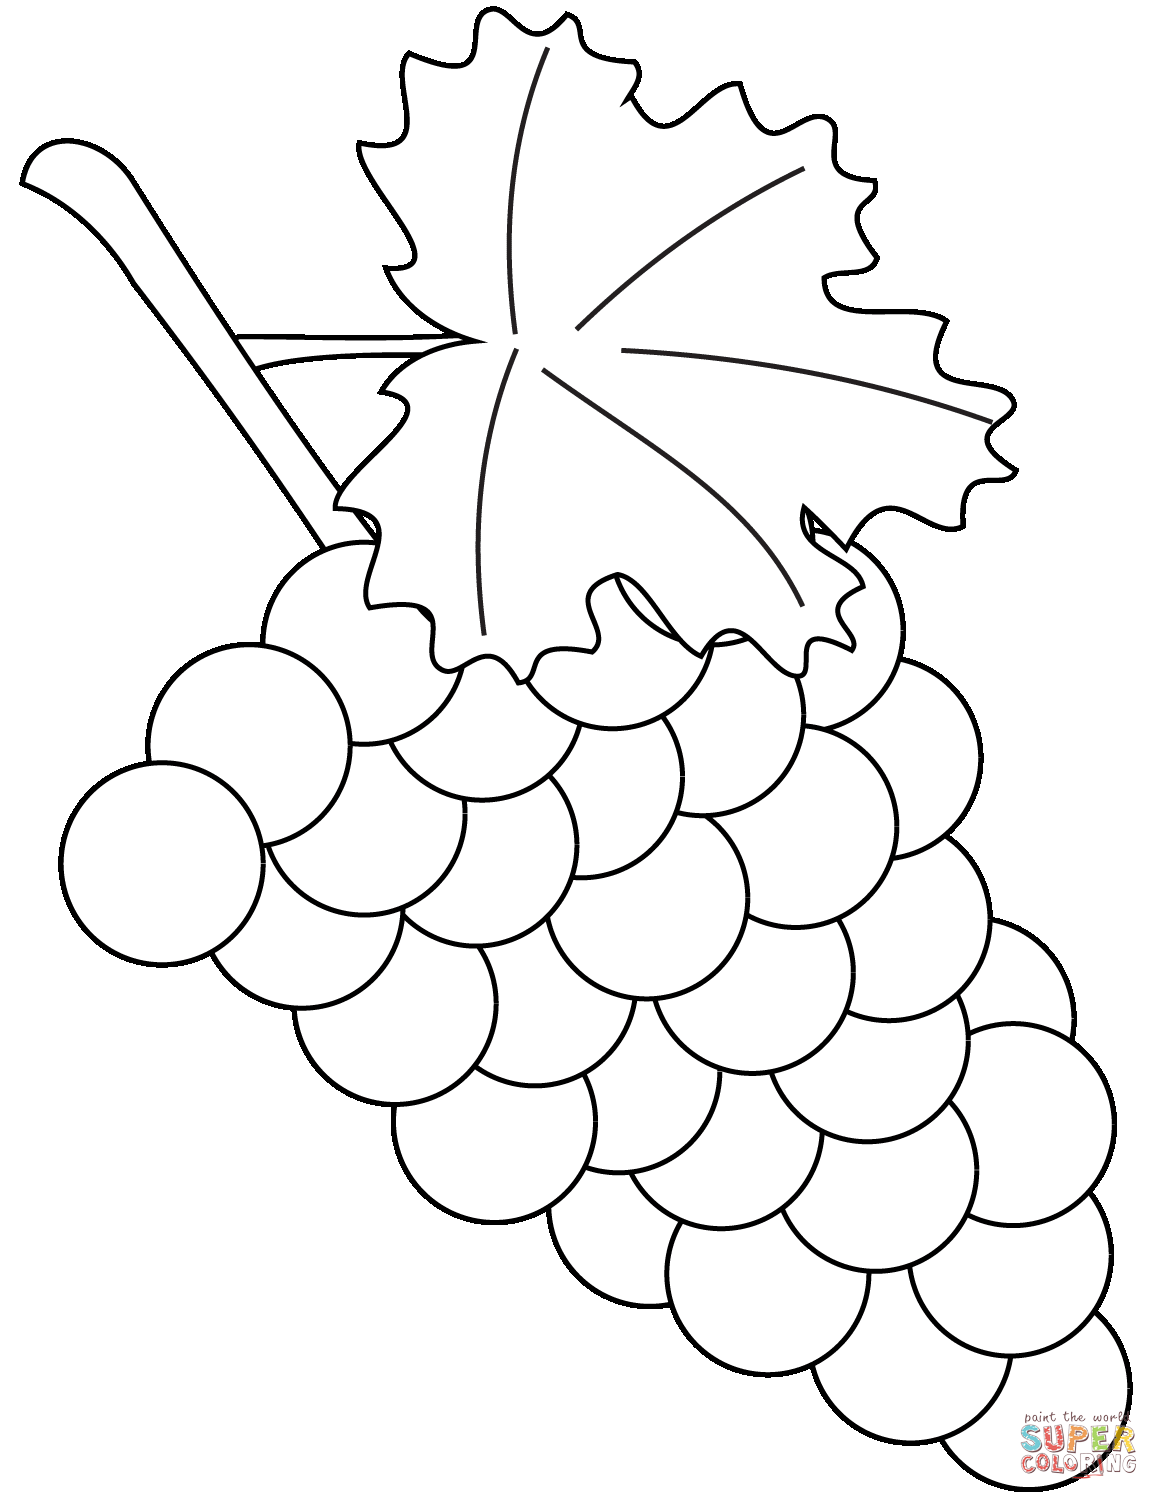 coloring picture of grapes grapes coloring page grapes clipart for coloring free grapes of coloring picture